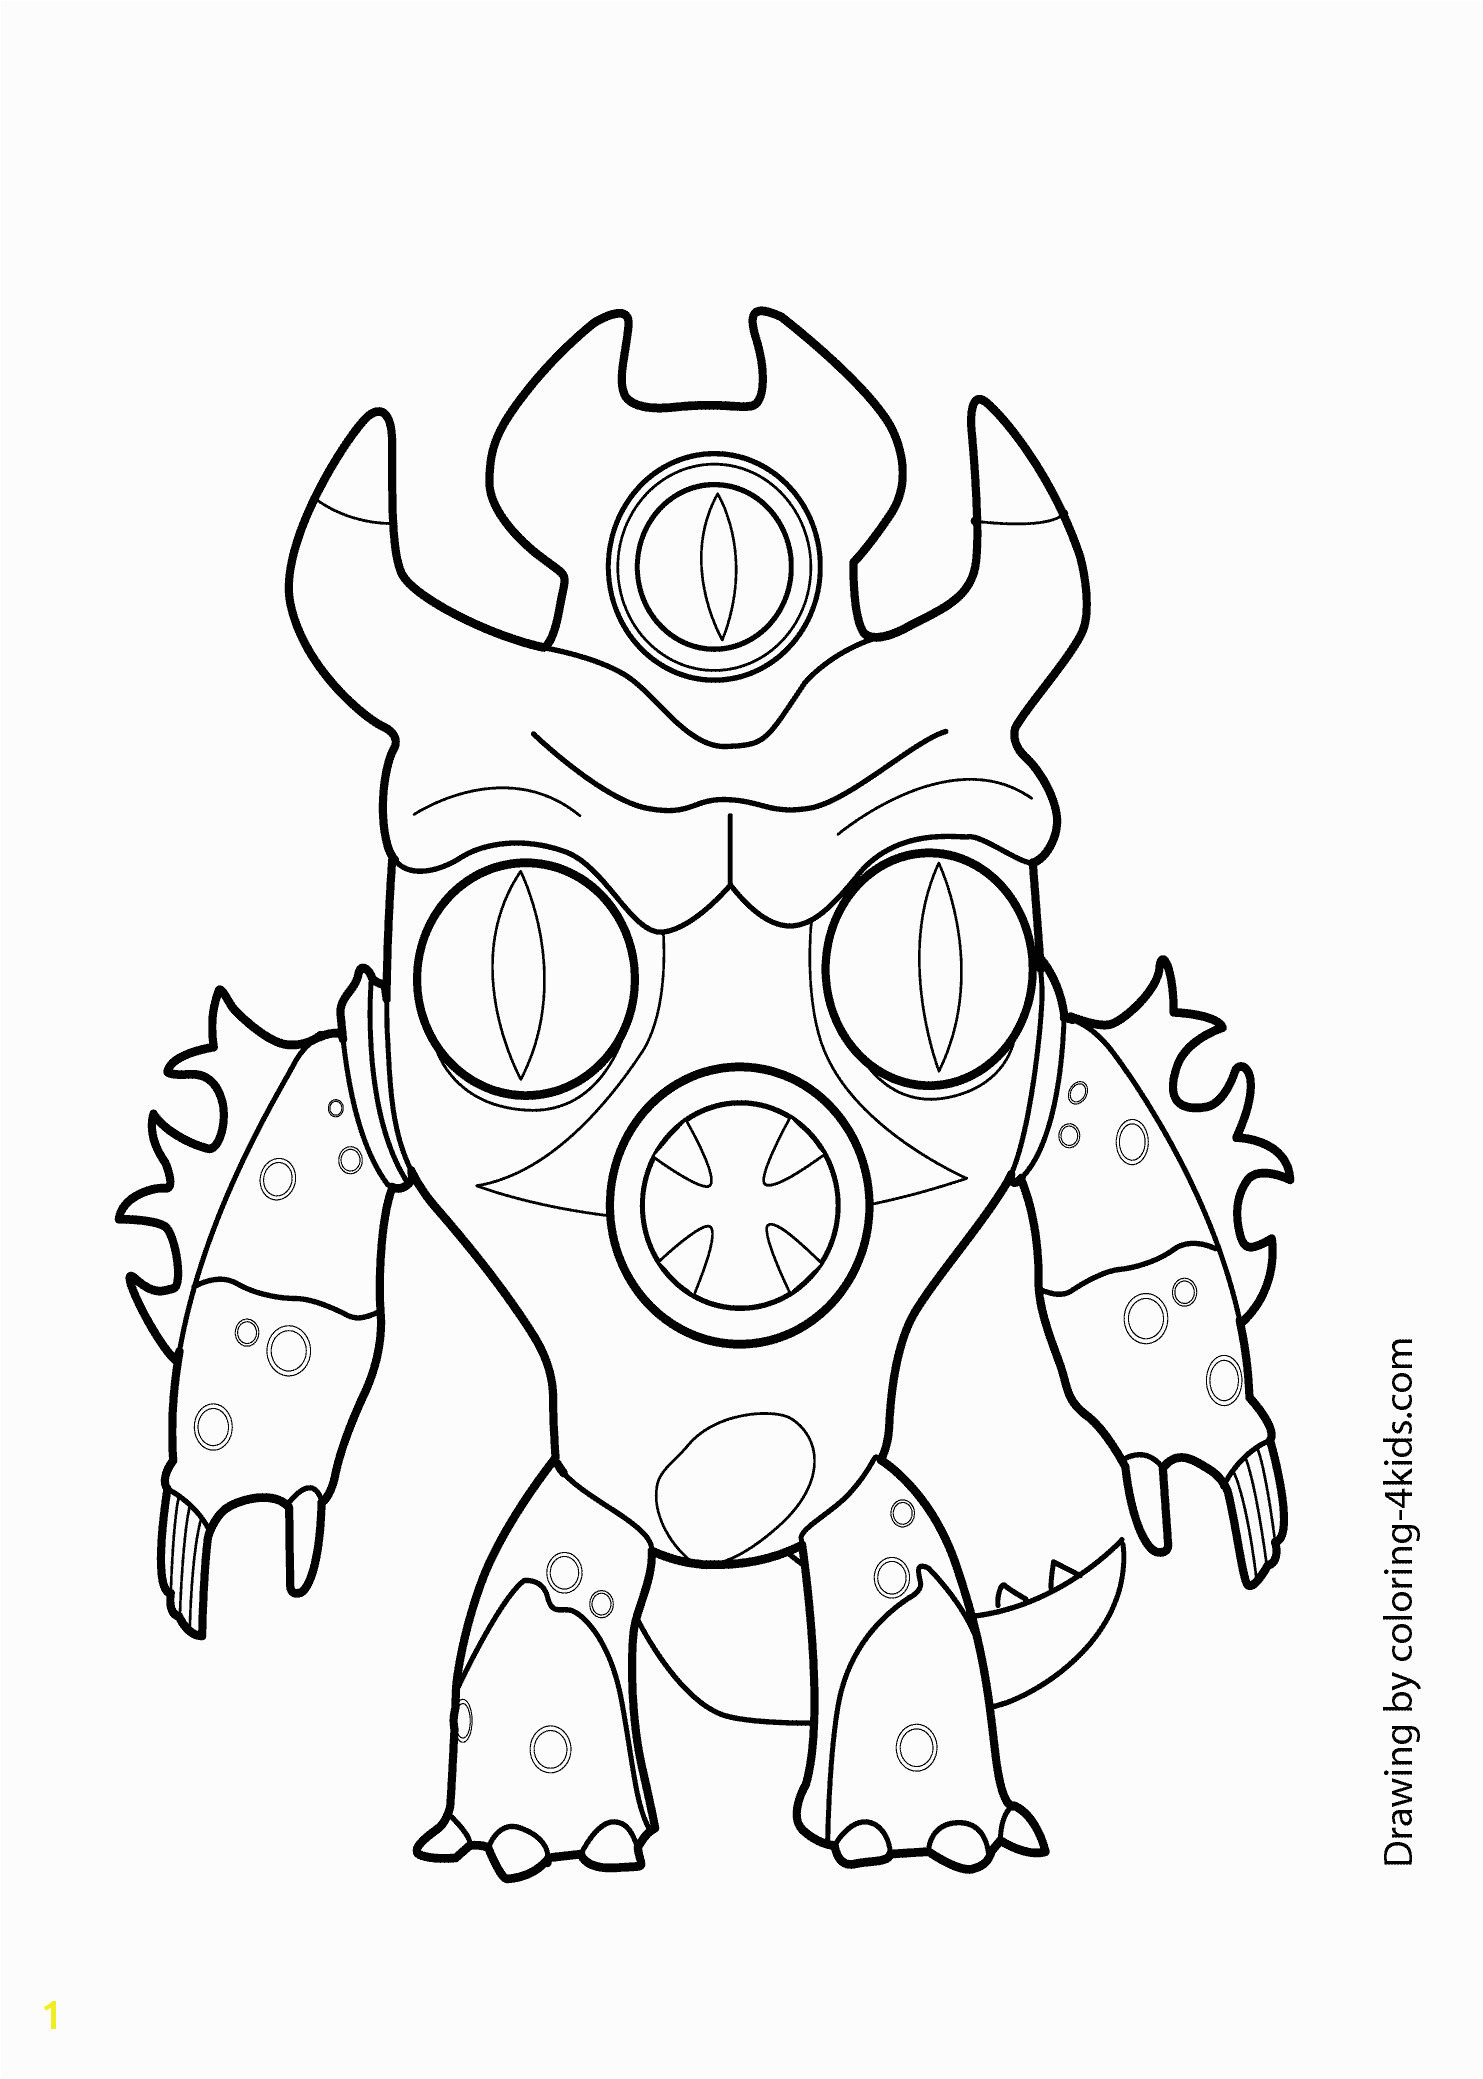 Epic Movie Coloring Pages Big Hero Fred Zilla Coloring Page for Kids Printable Free Big Hero